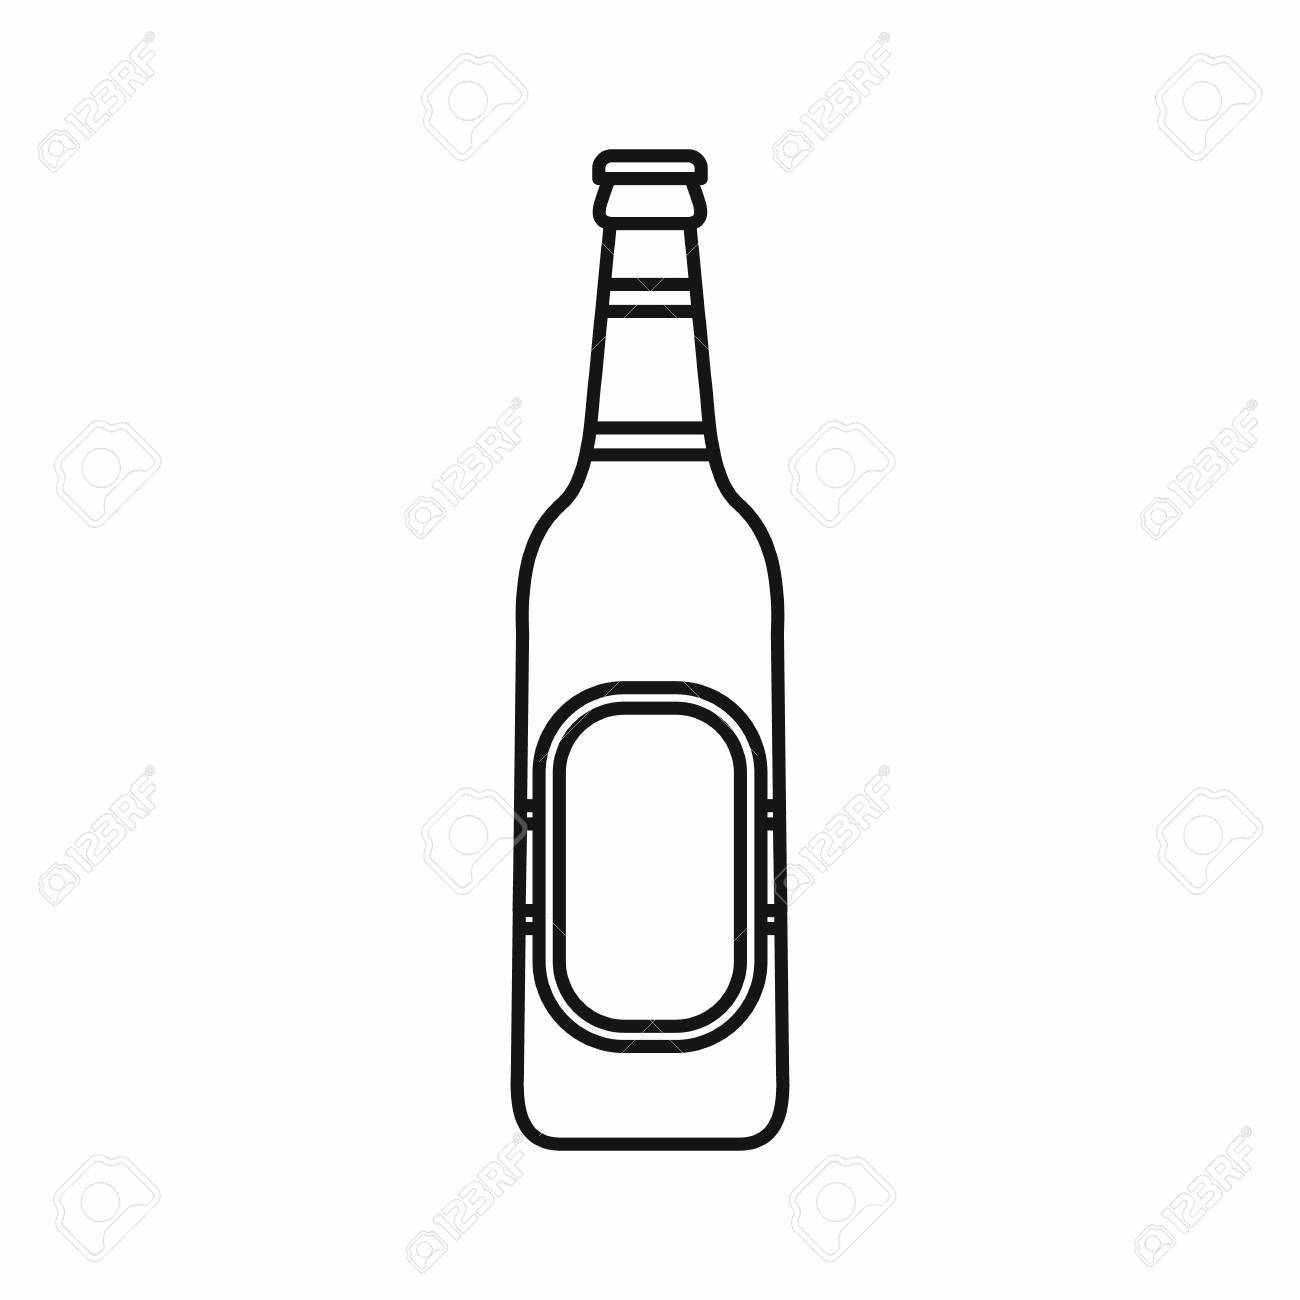 Bottle of beer icon in outline style isolated vector illustration.